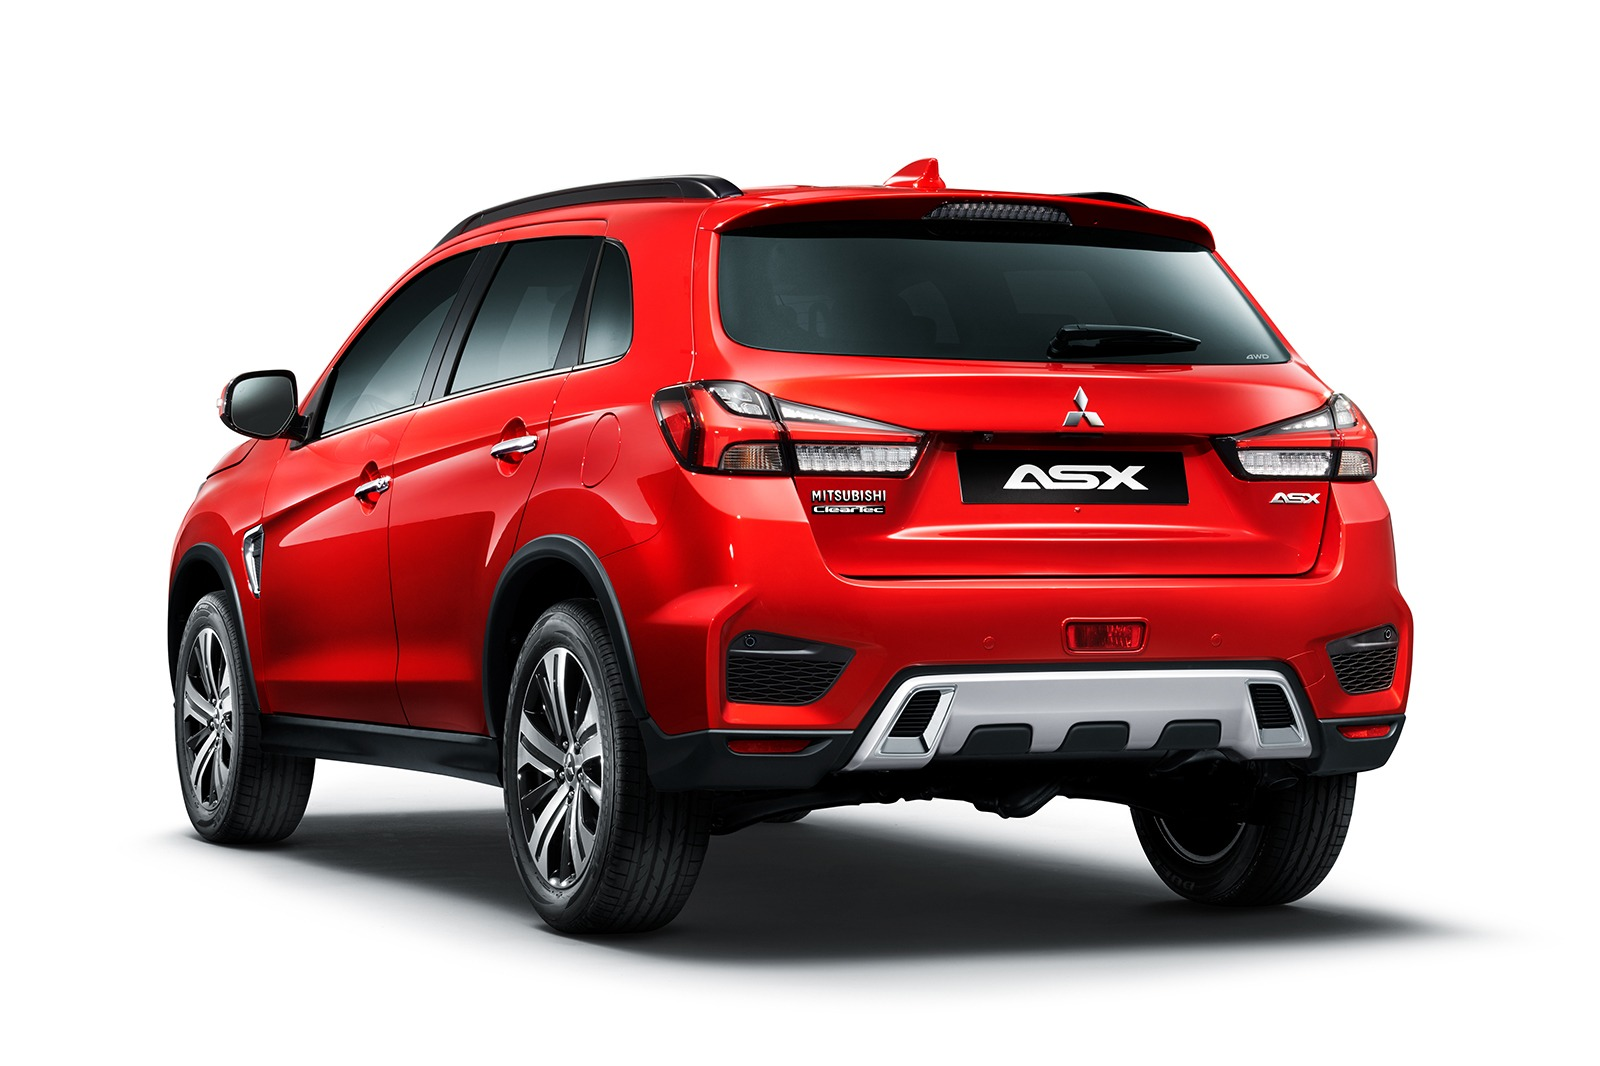 2020 Mitsubishi Outlander Review.Complete Car Info For 28 Best 2020 Mitsubishi Outlander